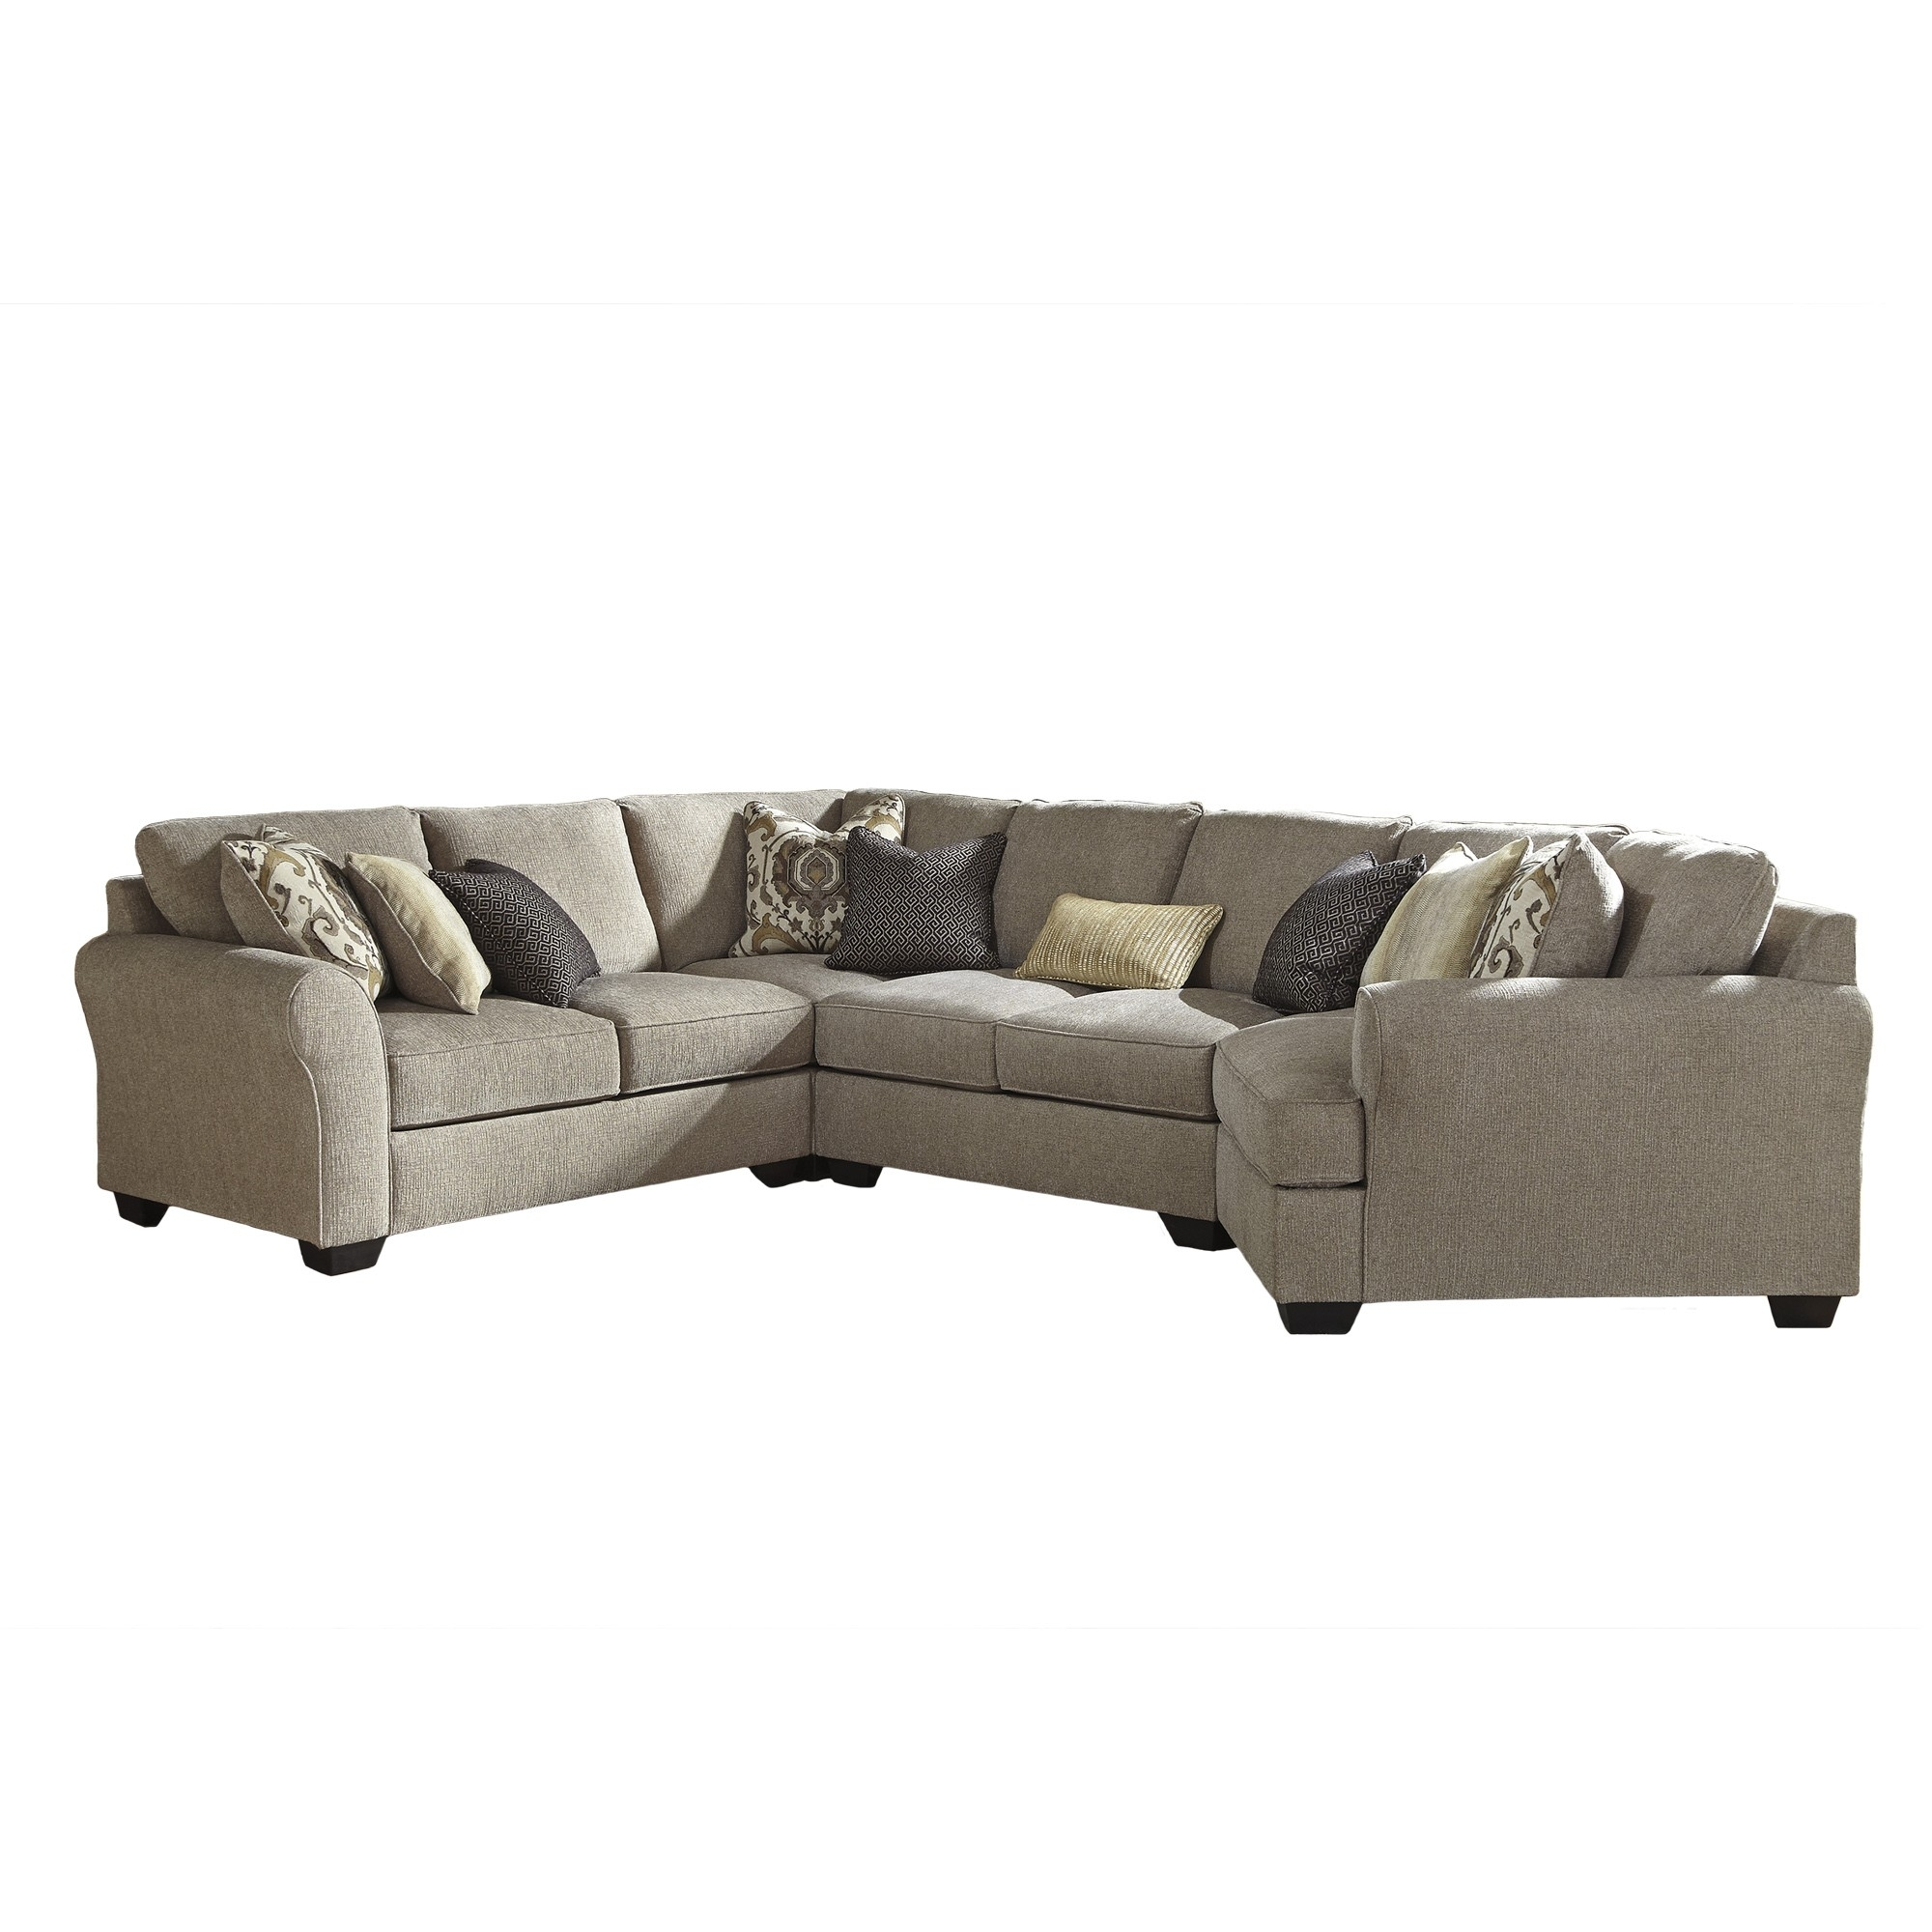 10 Ideas Of Teppermans Sectional Sofas